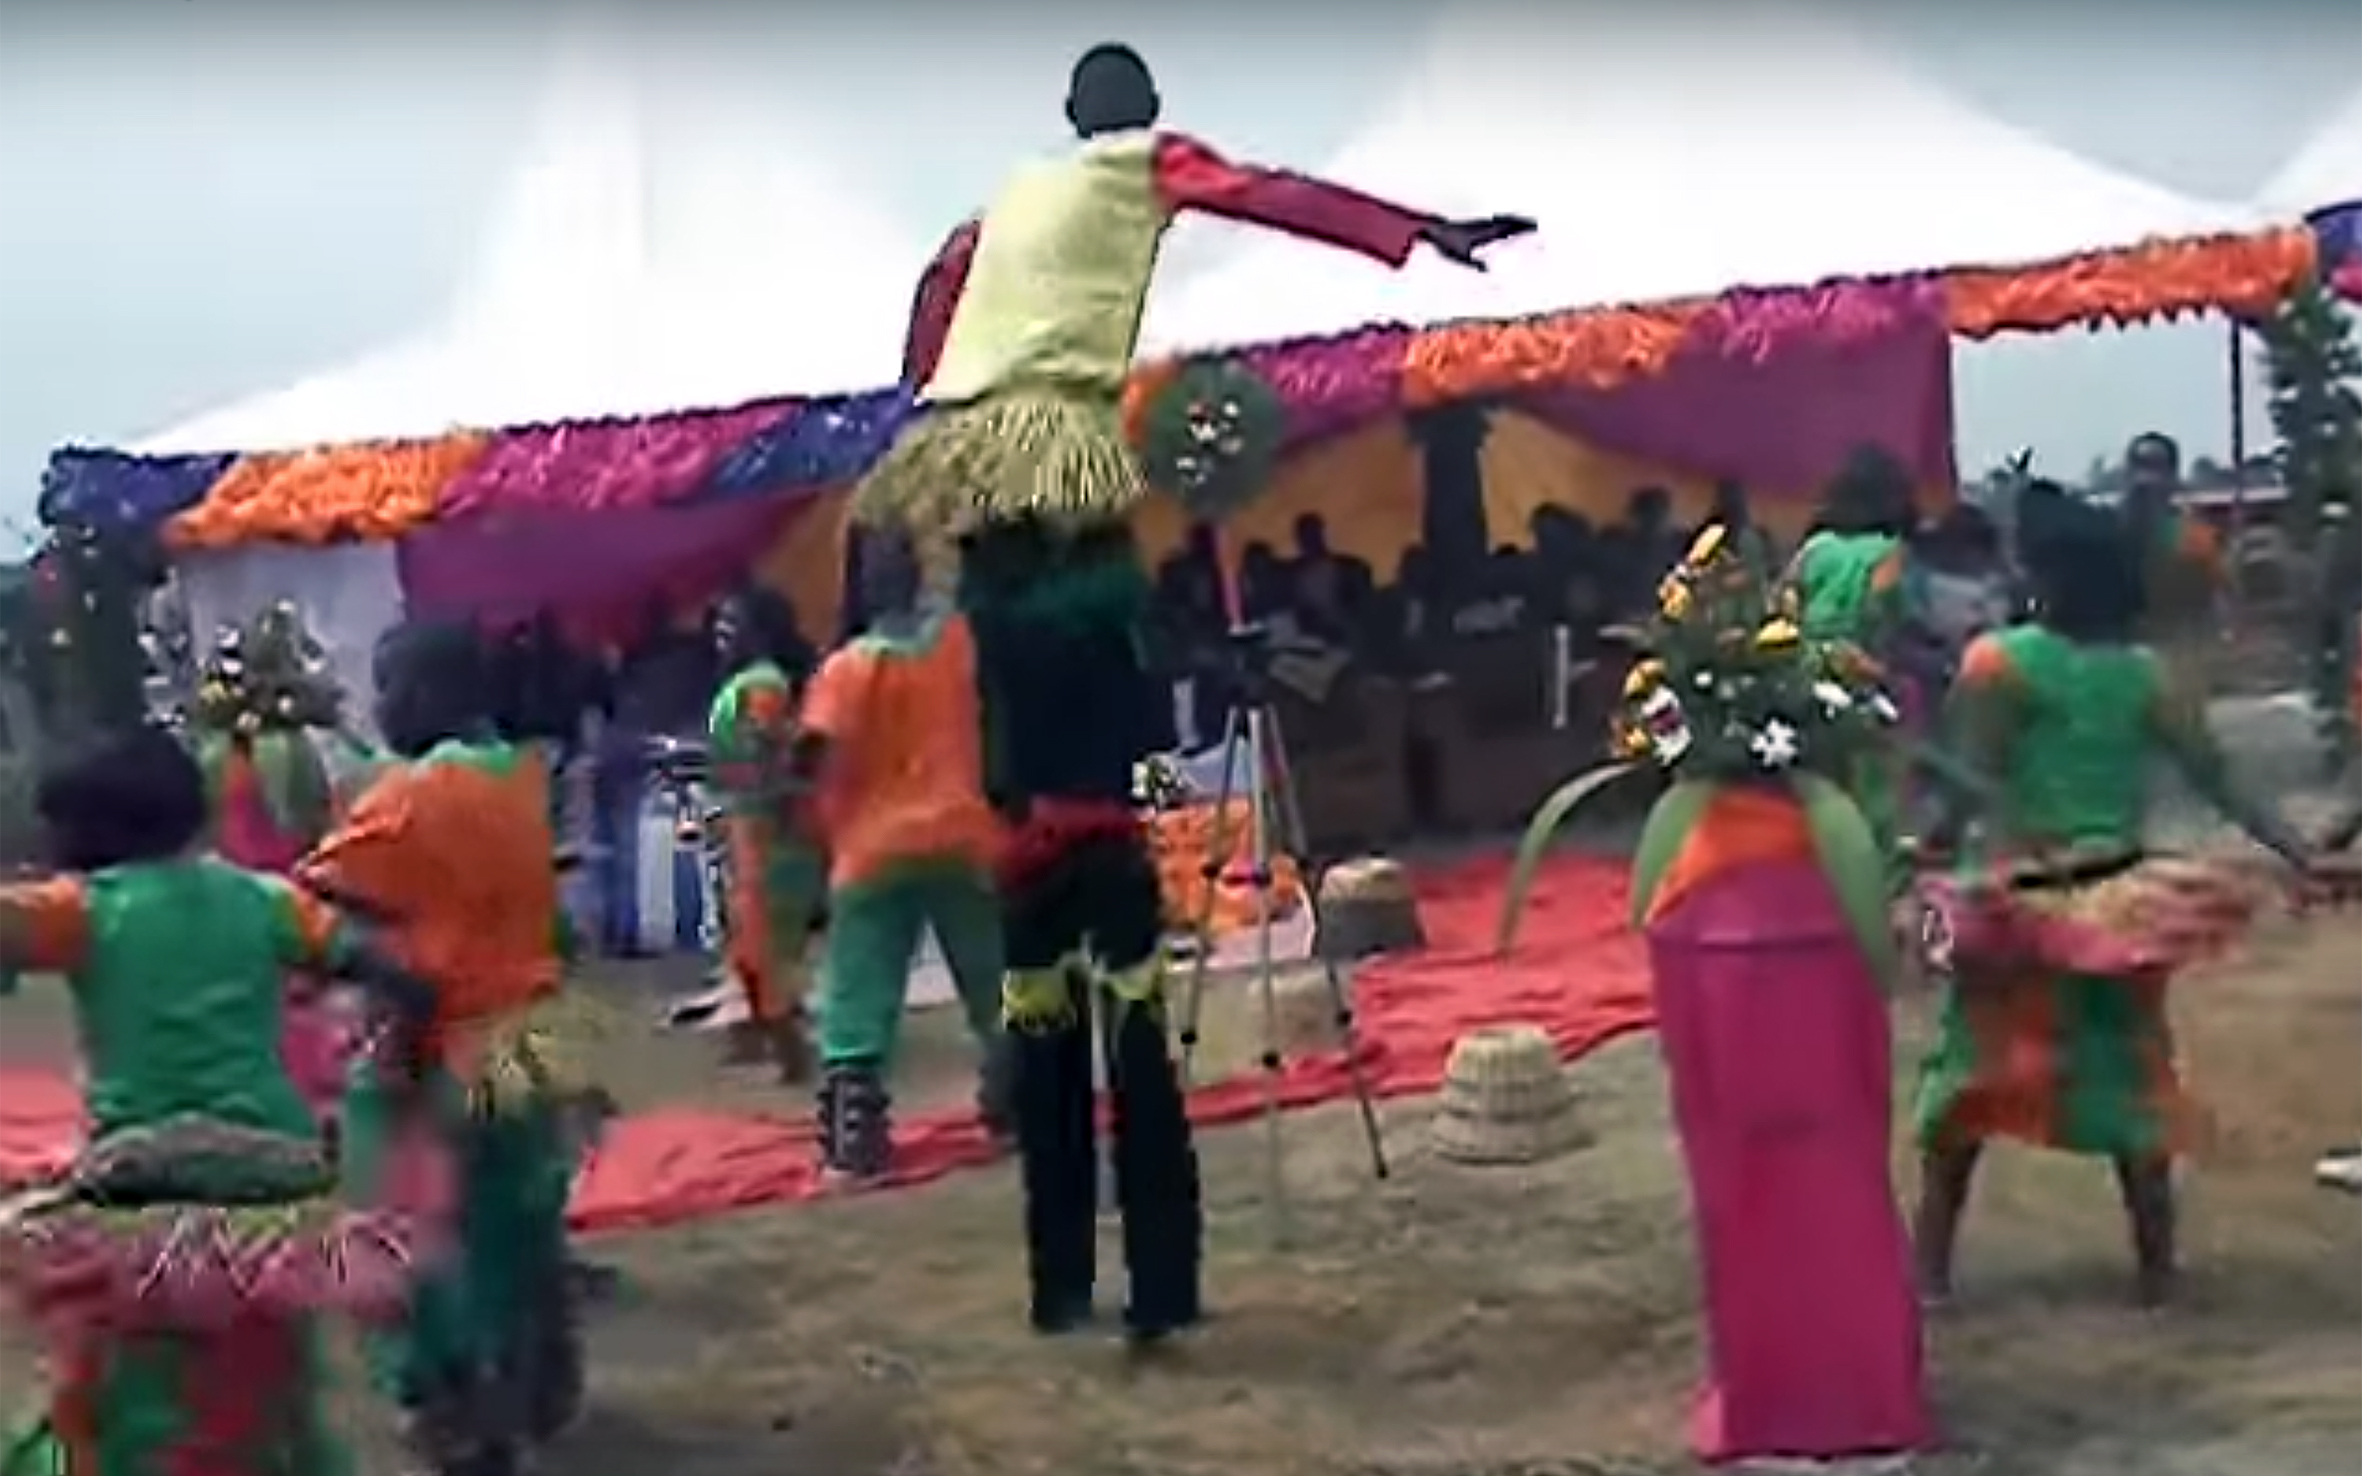 887.Tooro DANCES / Uganda - Tooro DANCES are dances performed by the Tooro people, living in one of the five traditional kingdoms located within the borders of Uganda.